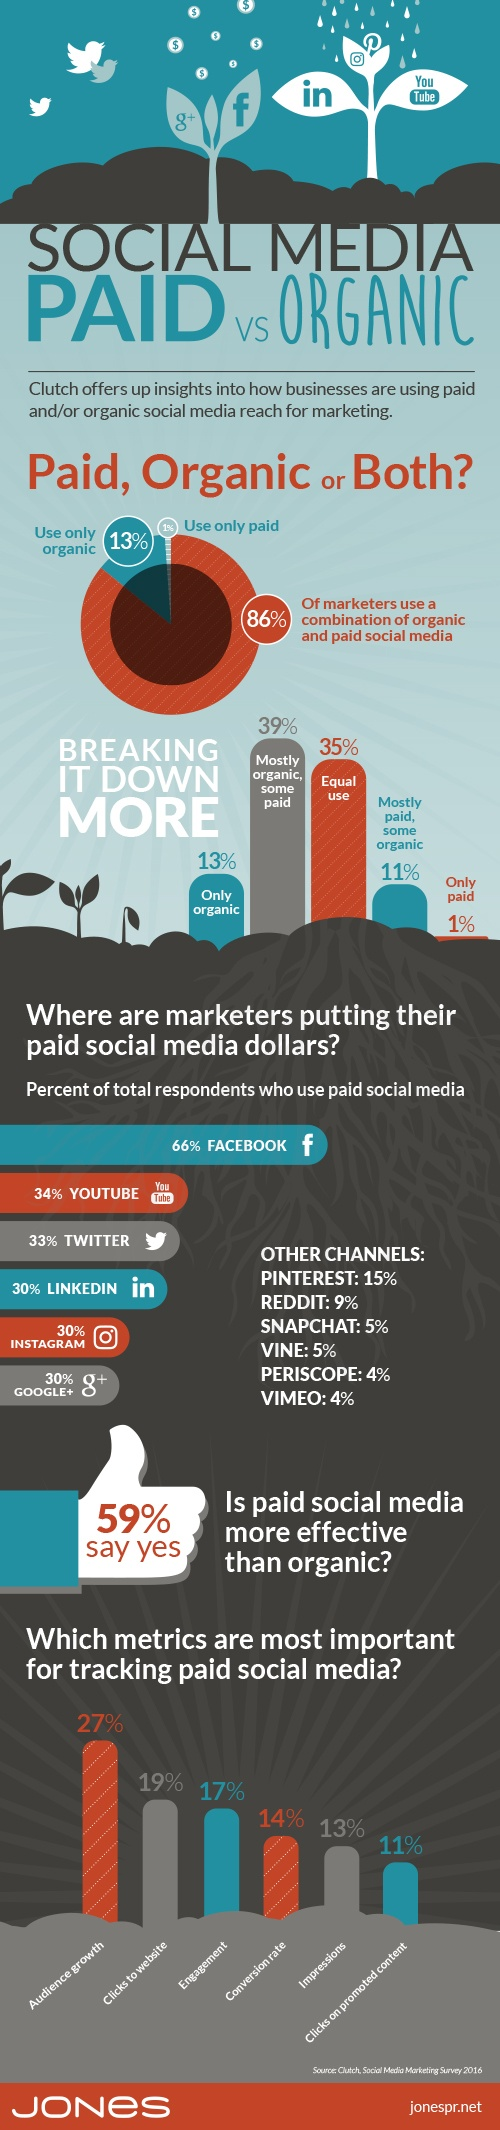 Social Media Use: Paid, Organic or Both? (Infographic)